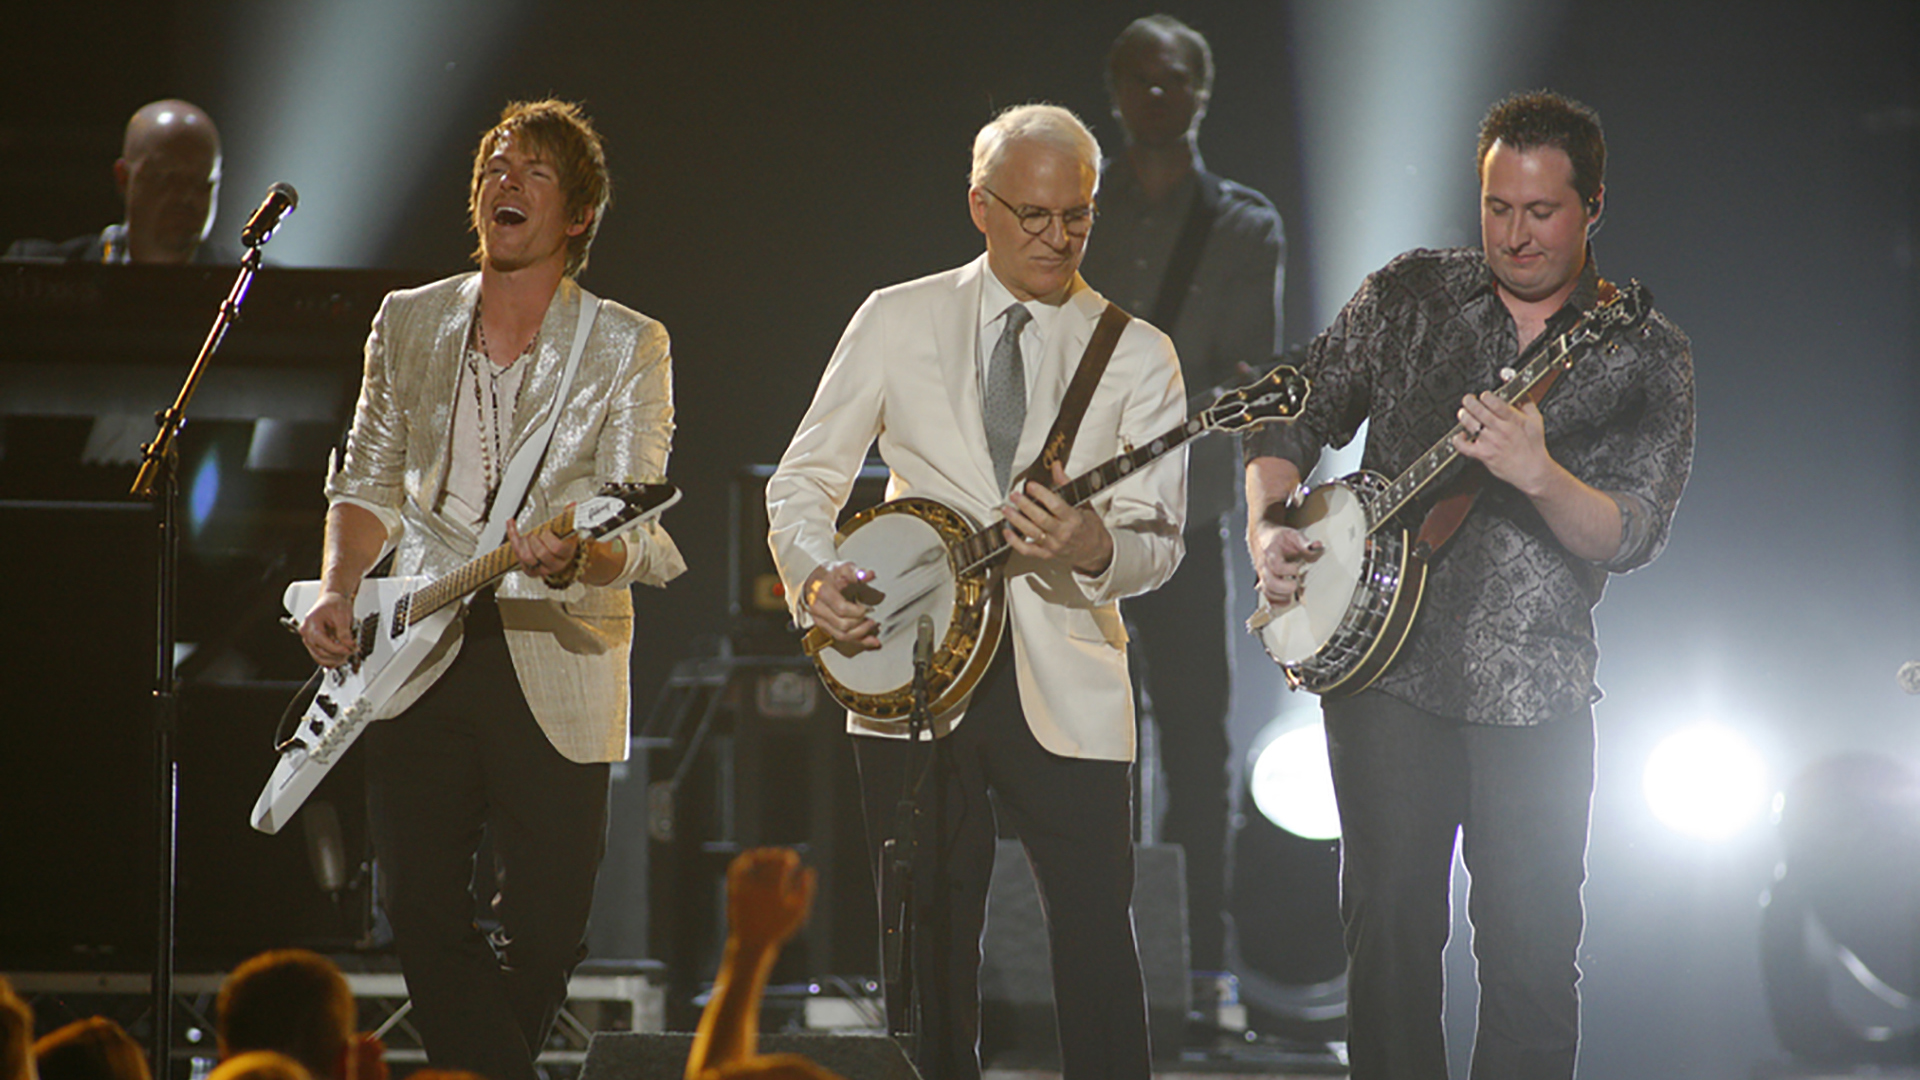 10. Rascal Flatts and Steve Martin perform